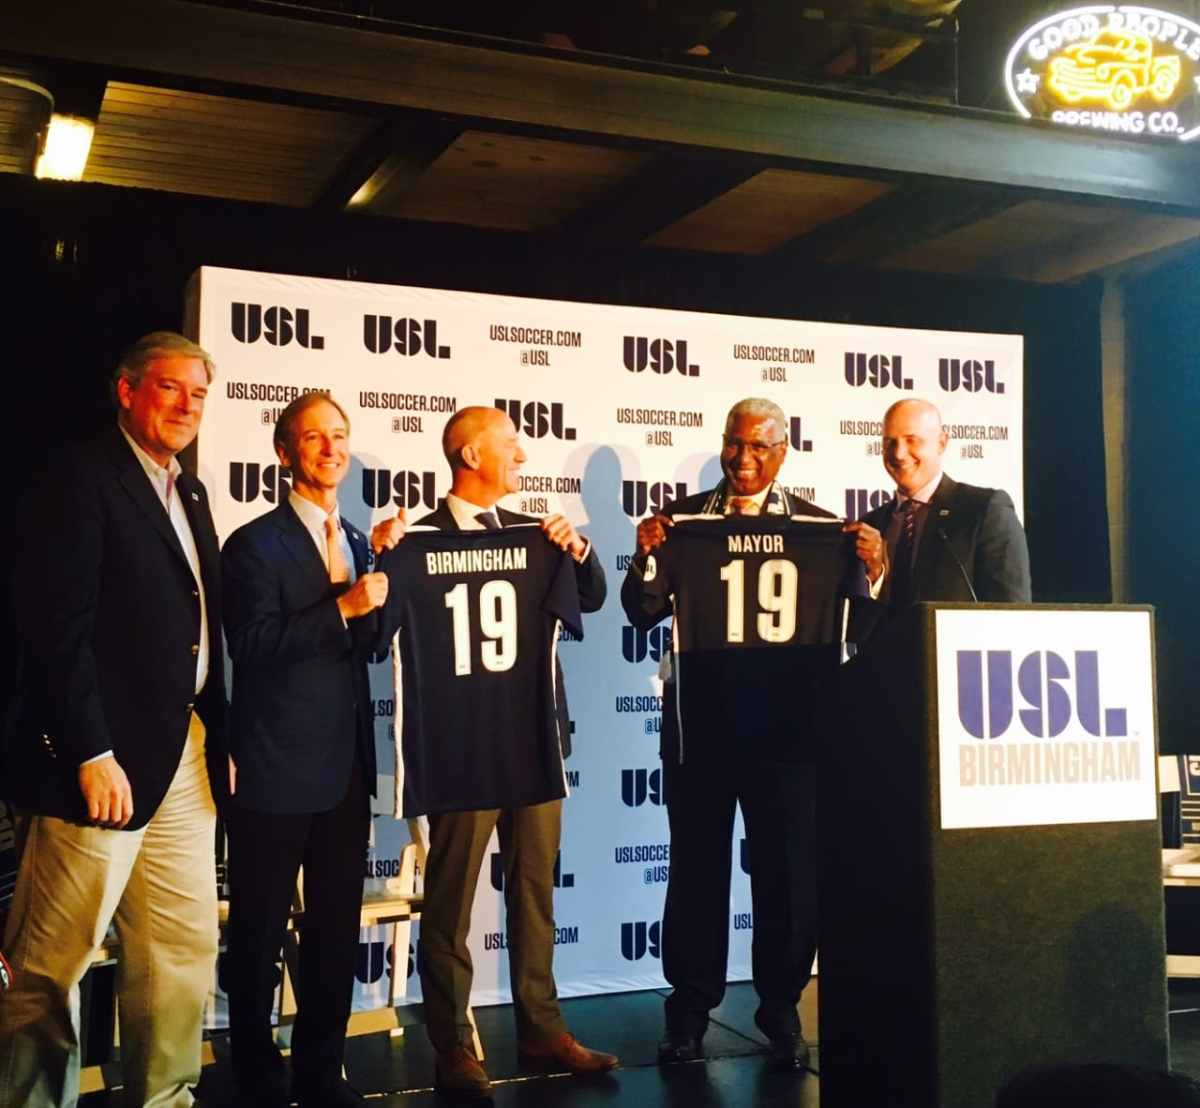 Soccer history in the Magic City! Birmingham to join USL in 2019